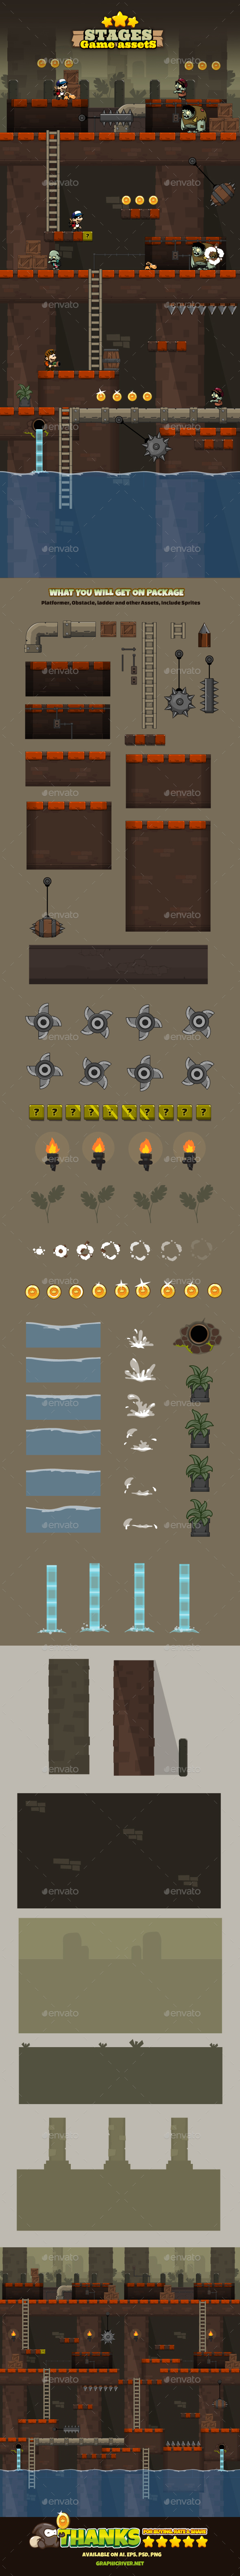 Game Stage 01 - Tilesets Game Assets